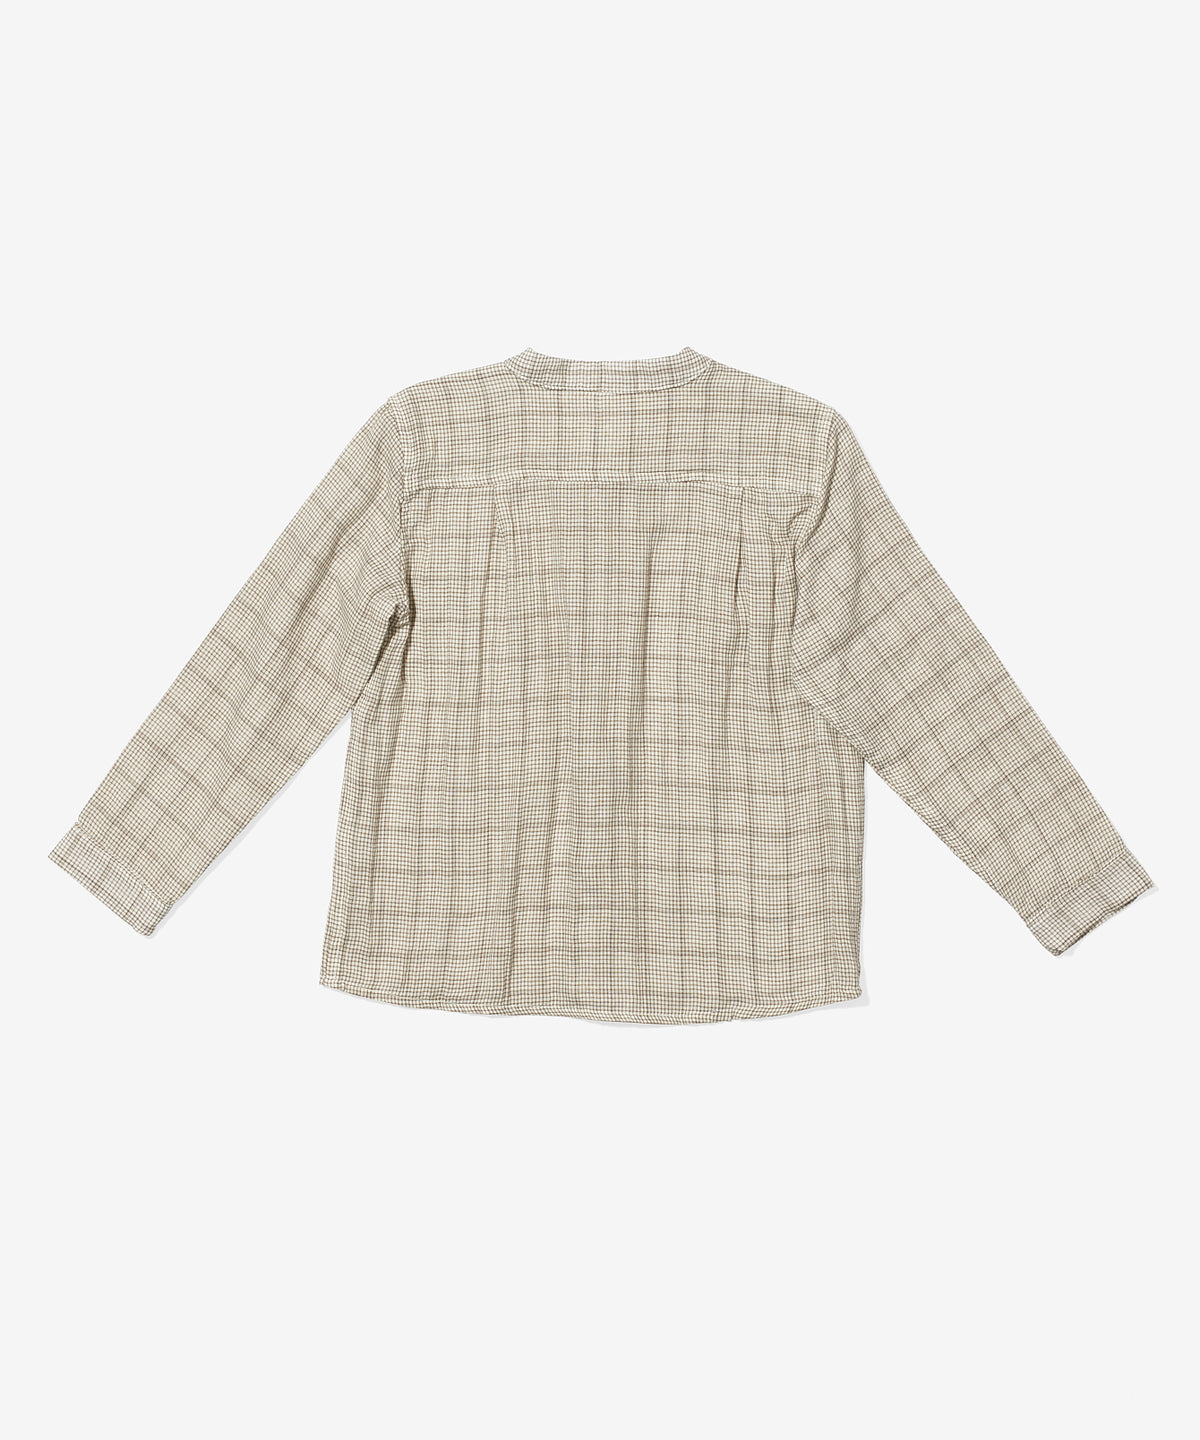 Jack Lee Shirt, Tan